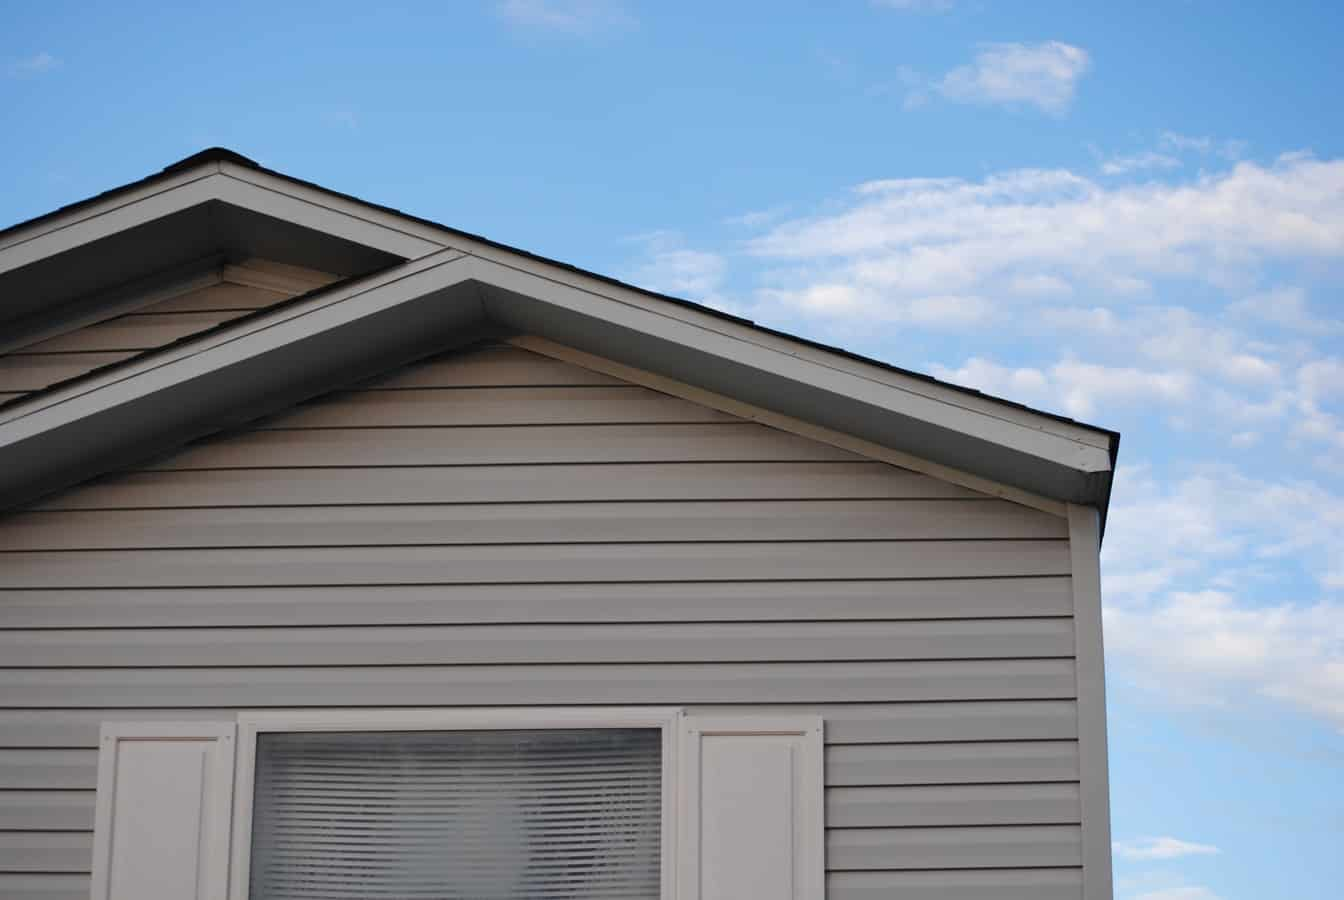 Wondering if it's time for siding replacement on your home's exterior? Here's how to tell if your house needs a facelift.